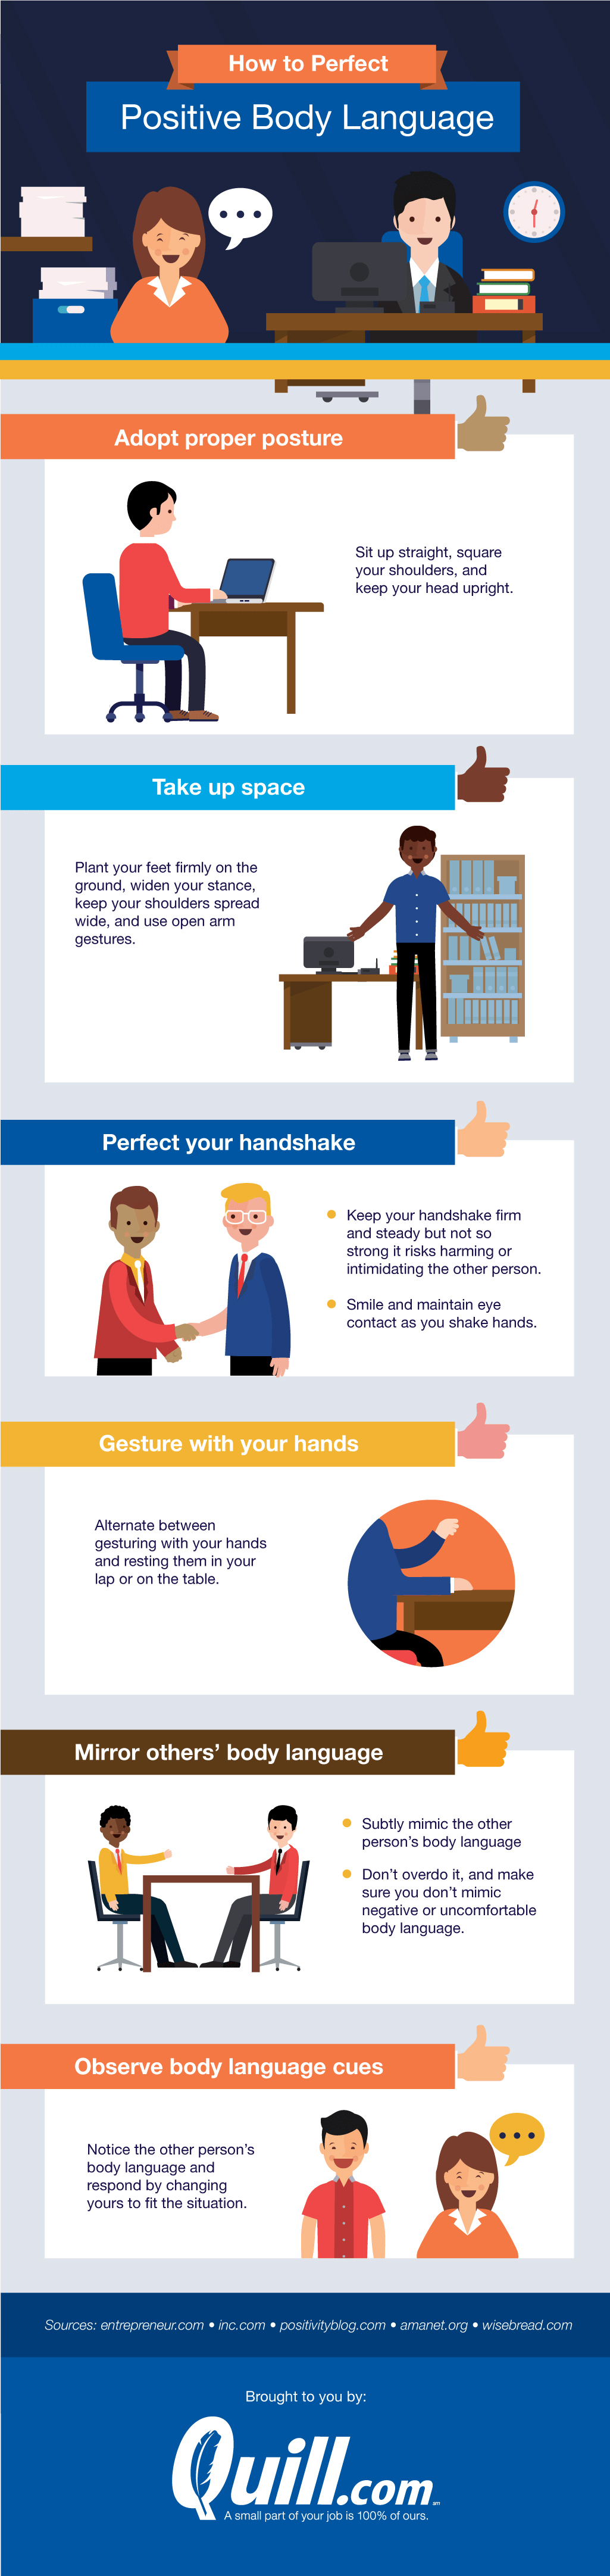 How Positive Body Language Creates Positive Workspaces - Infographic